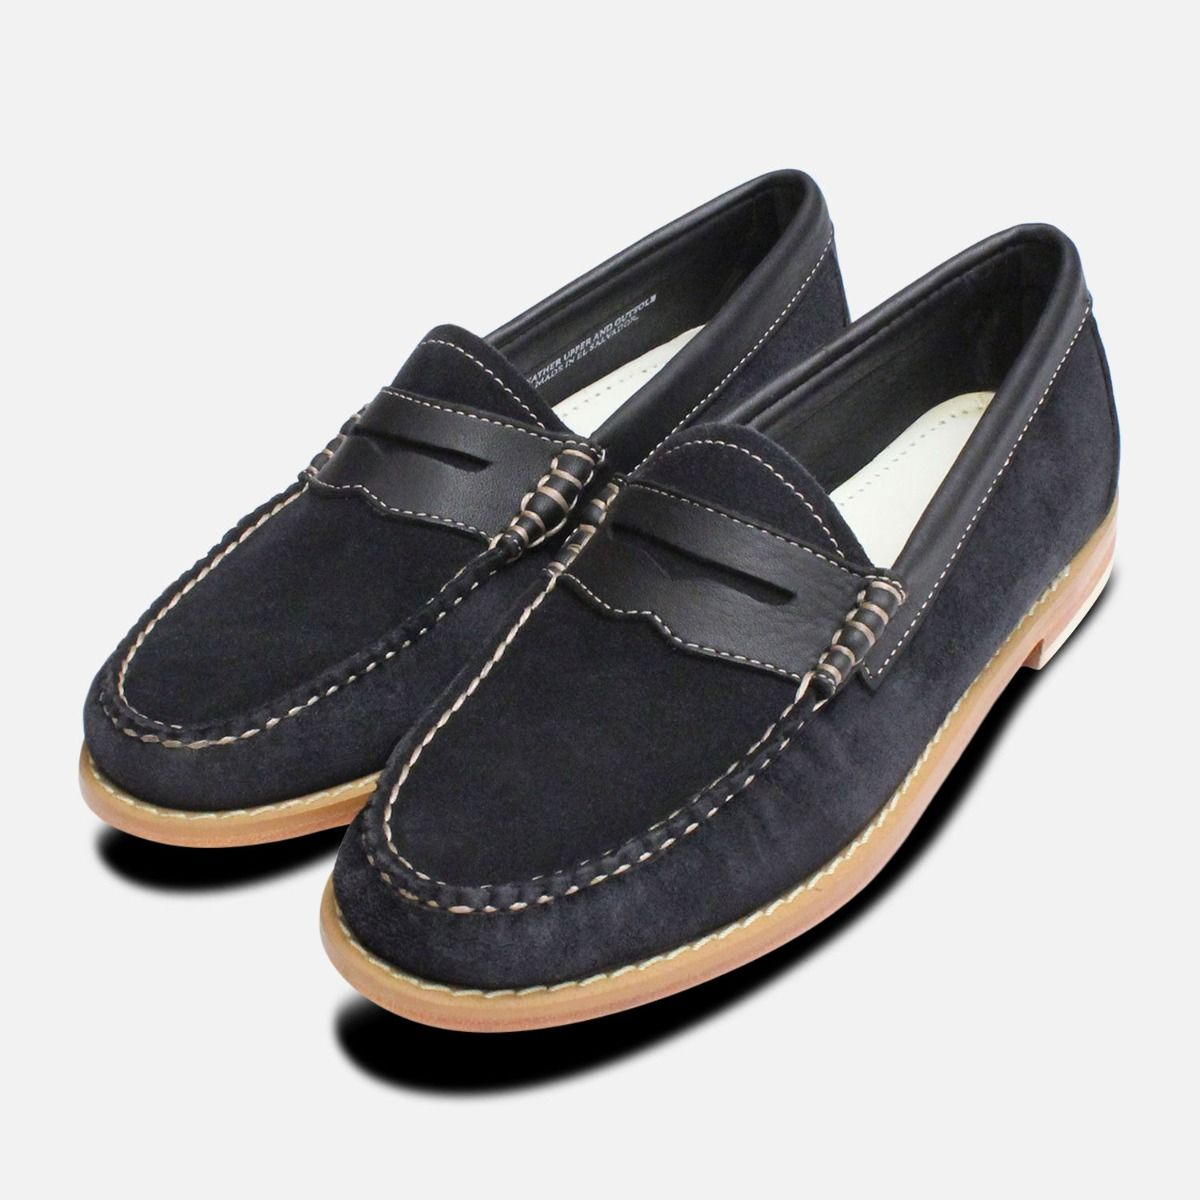 76caf070993 Navy Blue Suede Womens Bass Penny Loafers